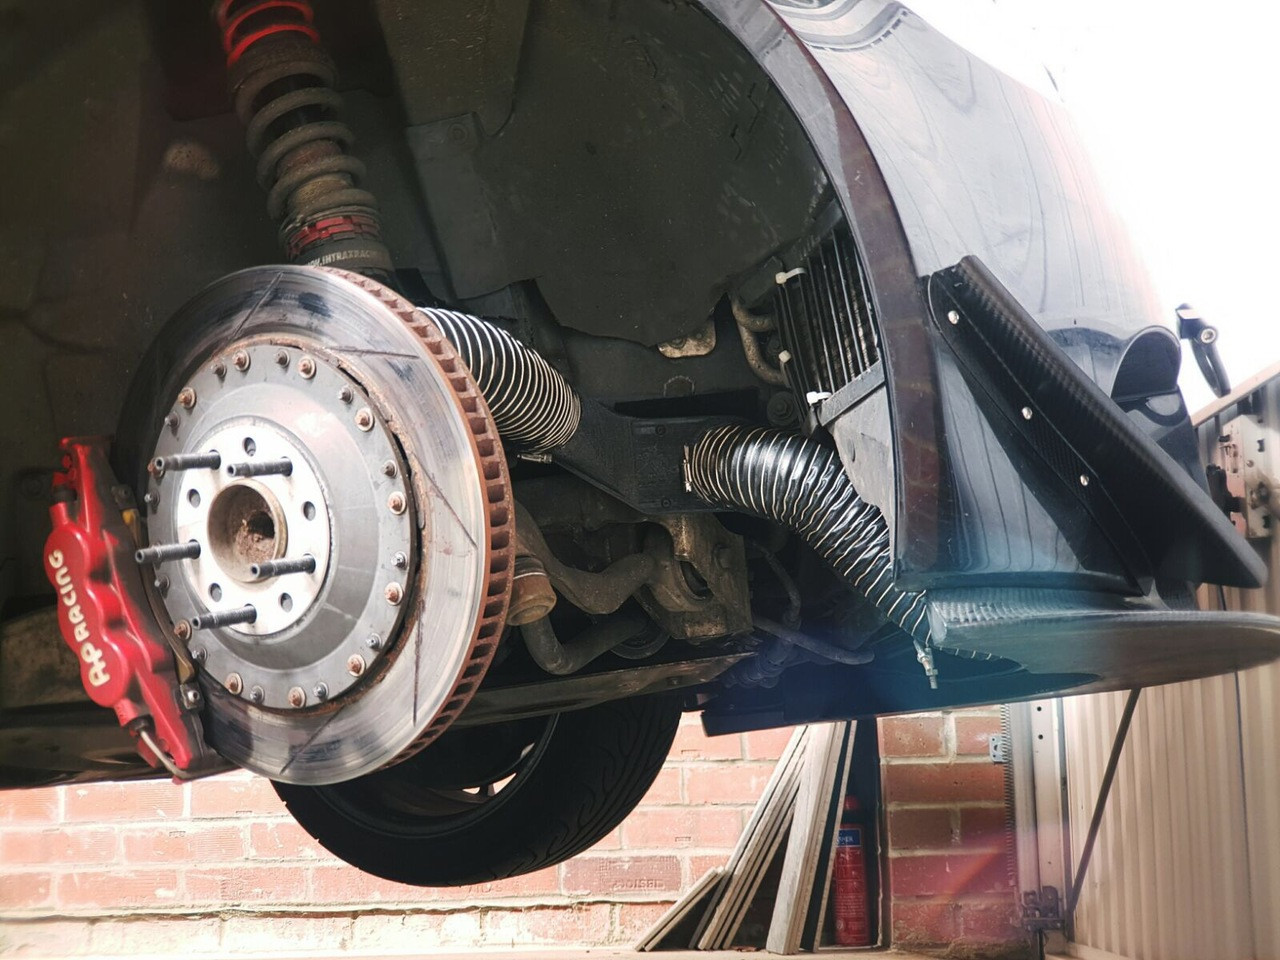 BMW E9X M3 Brake Cooling Duct Race Kit installed